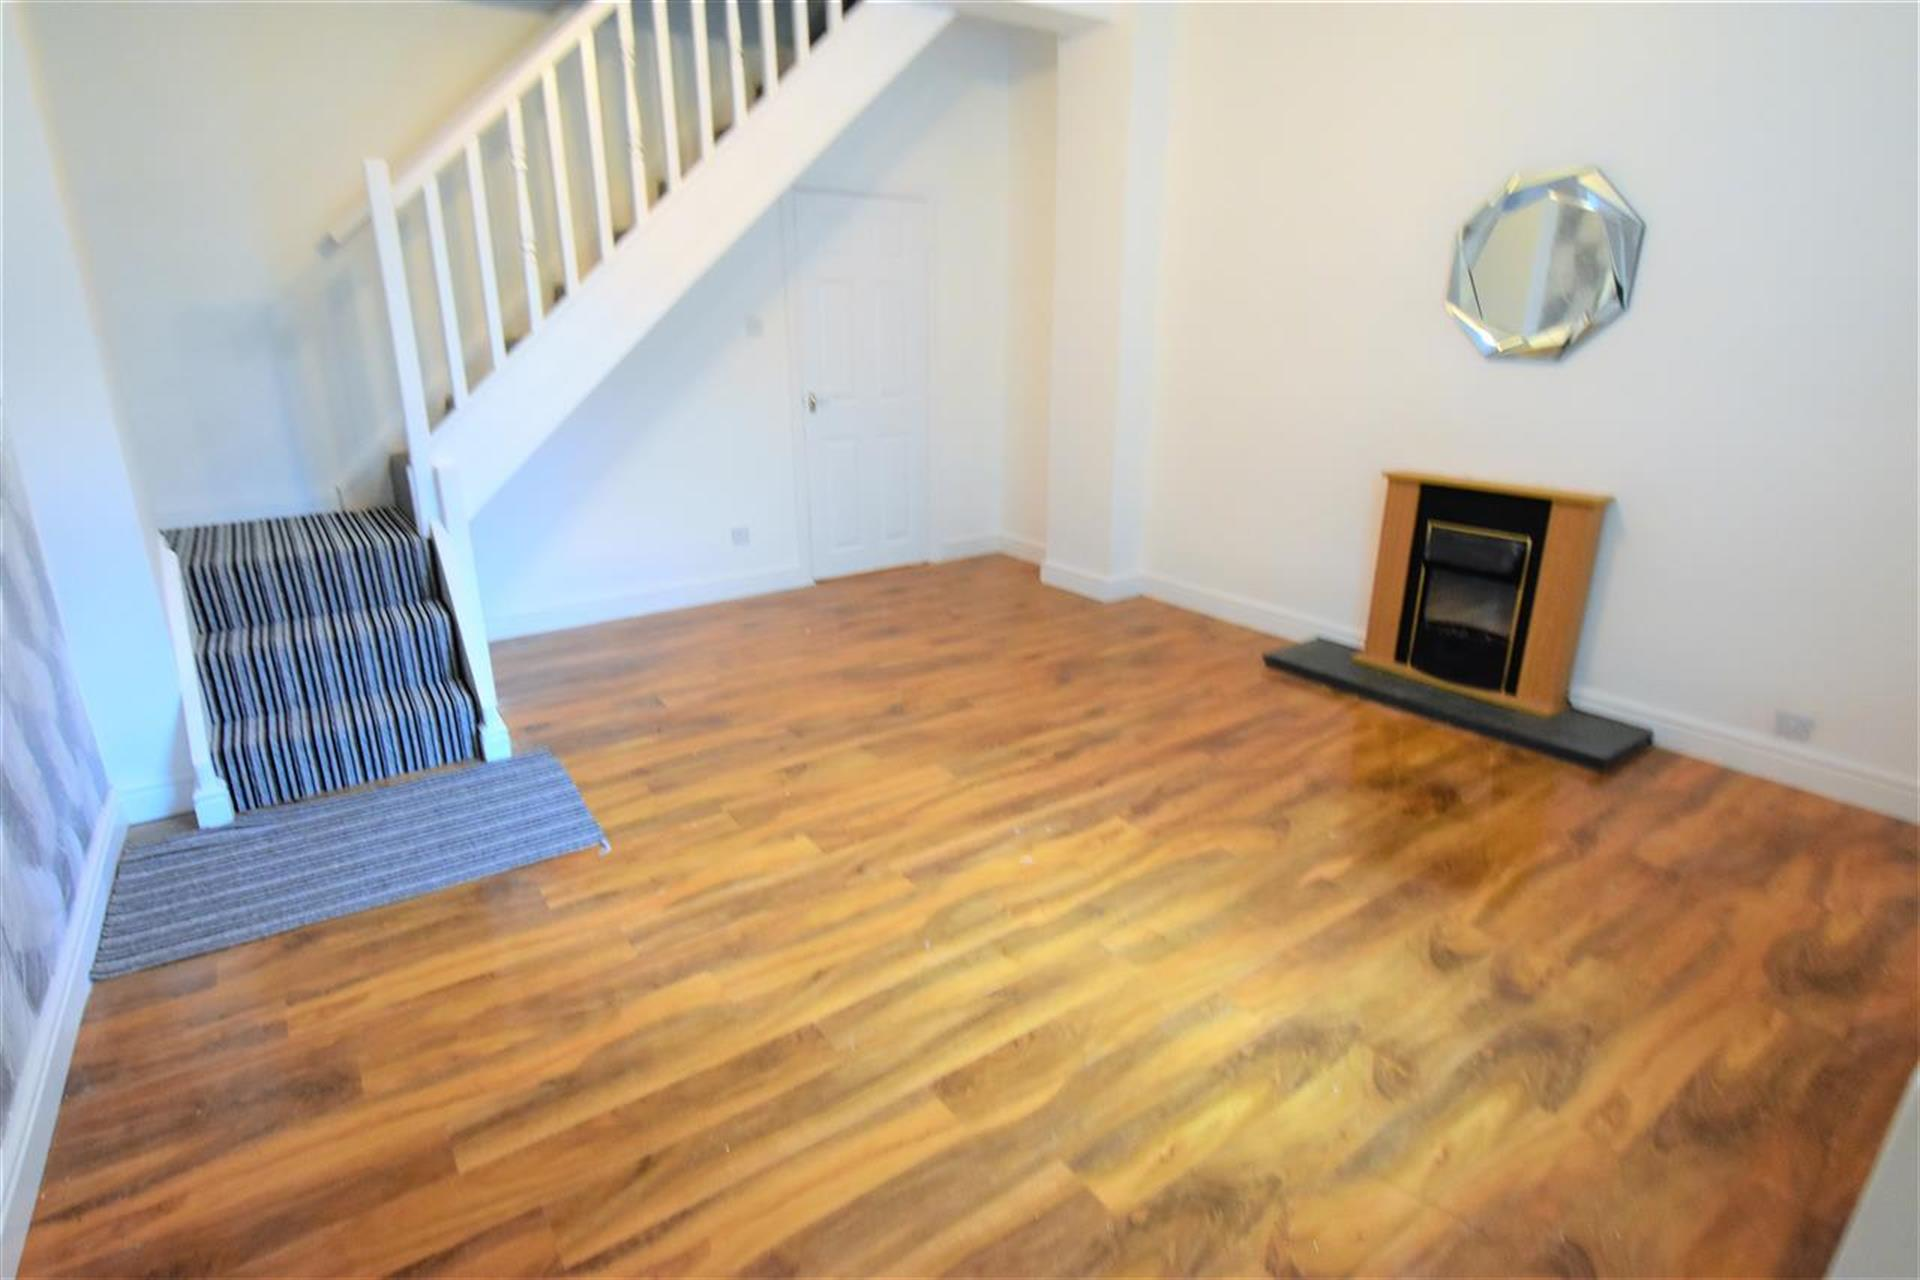 2 Bedroom Terraced House To Rent - Second reception room